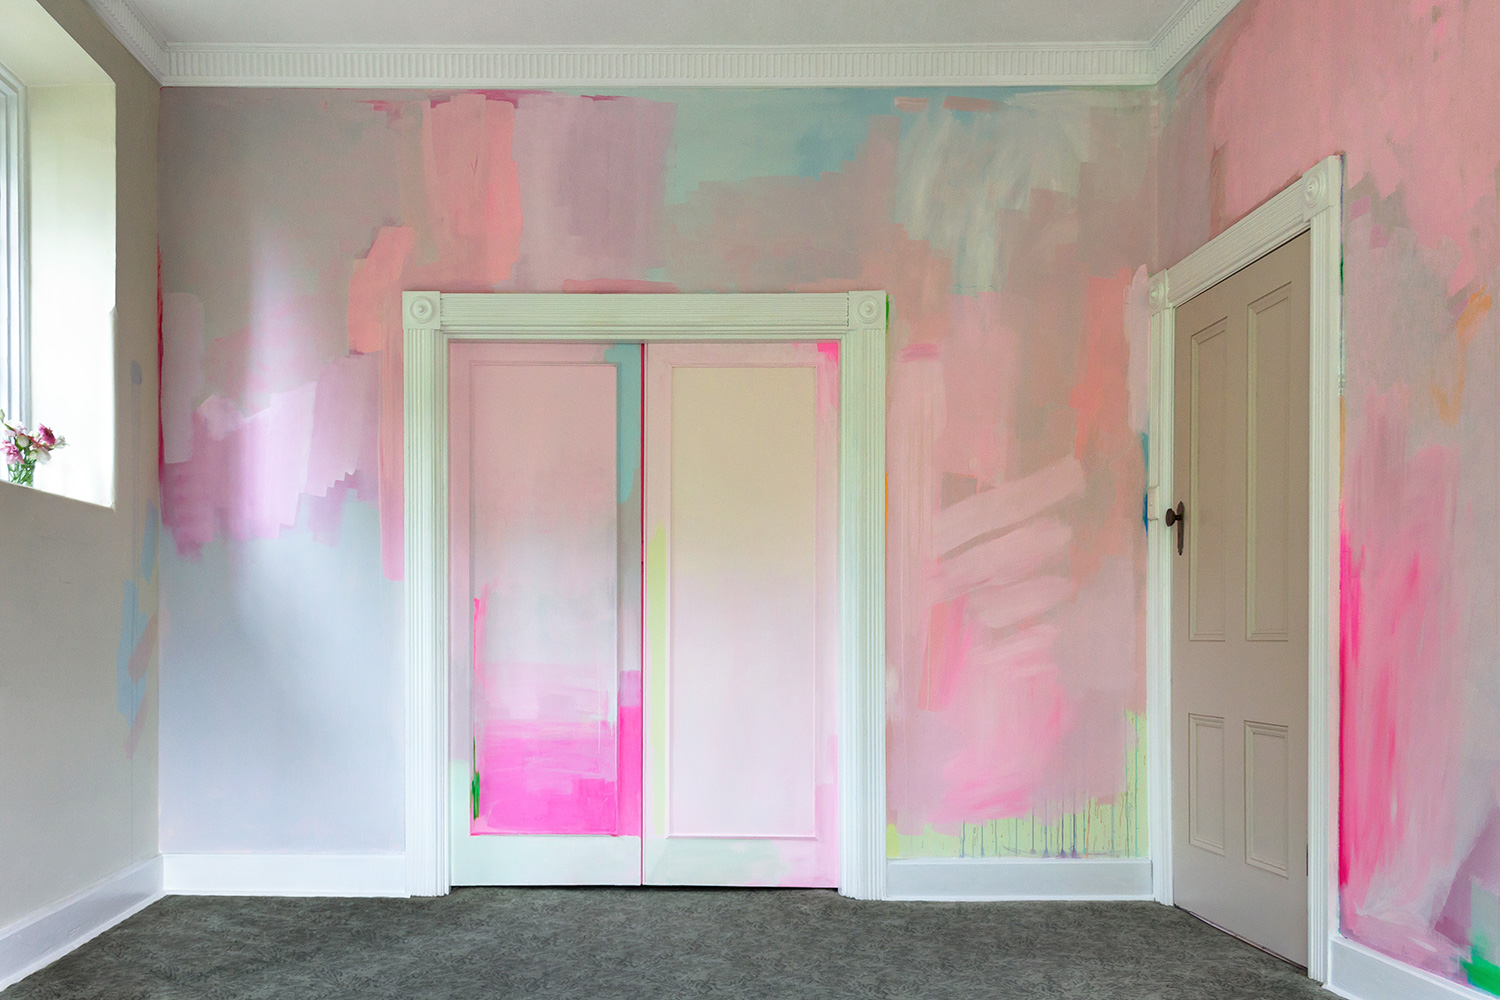 Modern abstract mural features splashes of pastel paint and pops of neon. The color creates an immersive environment - an abstract painting you can step into.